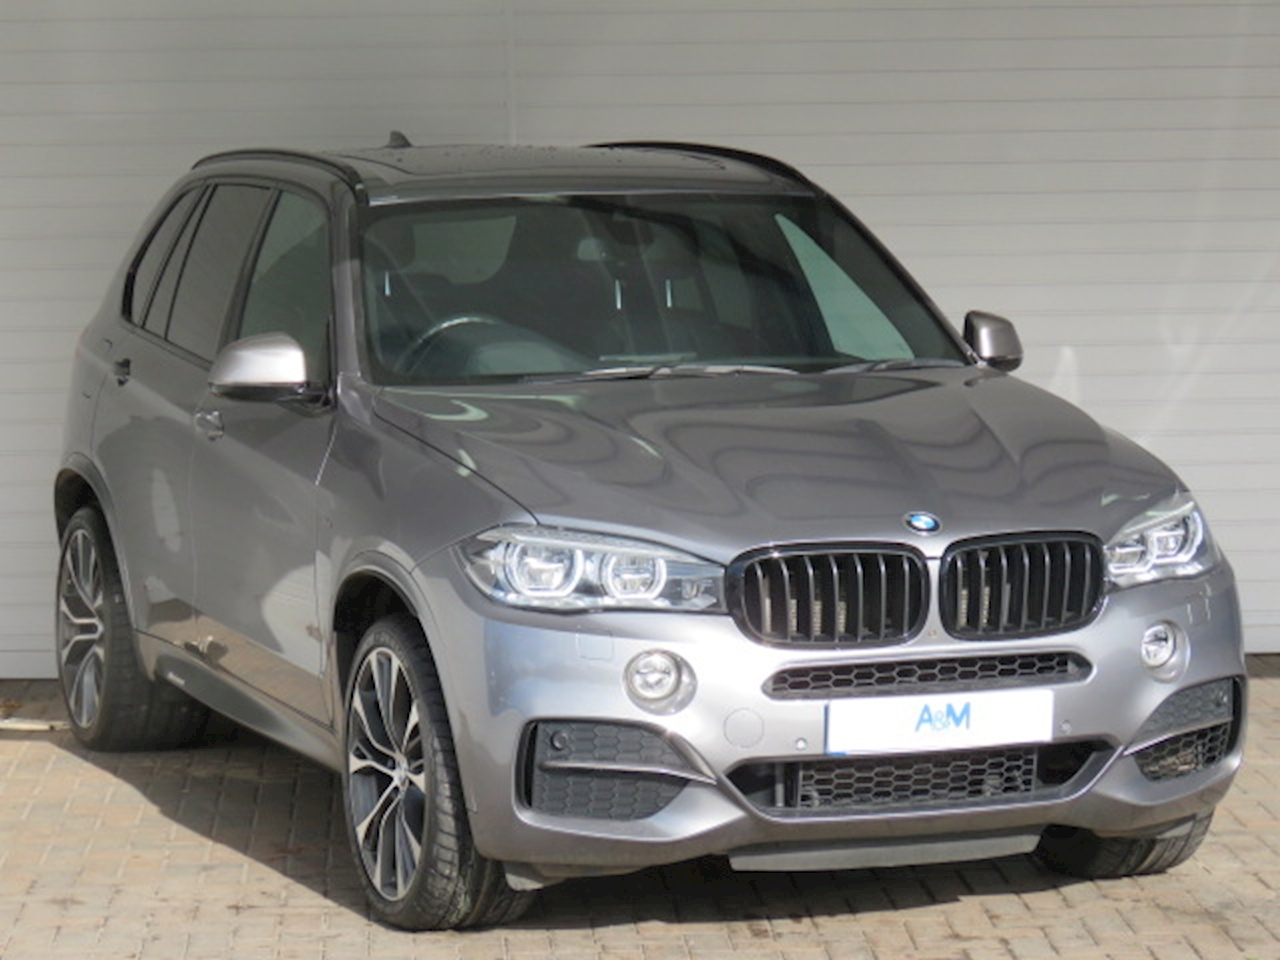 BMW X5 M50d Estate 3.0 Automatic Diesel